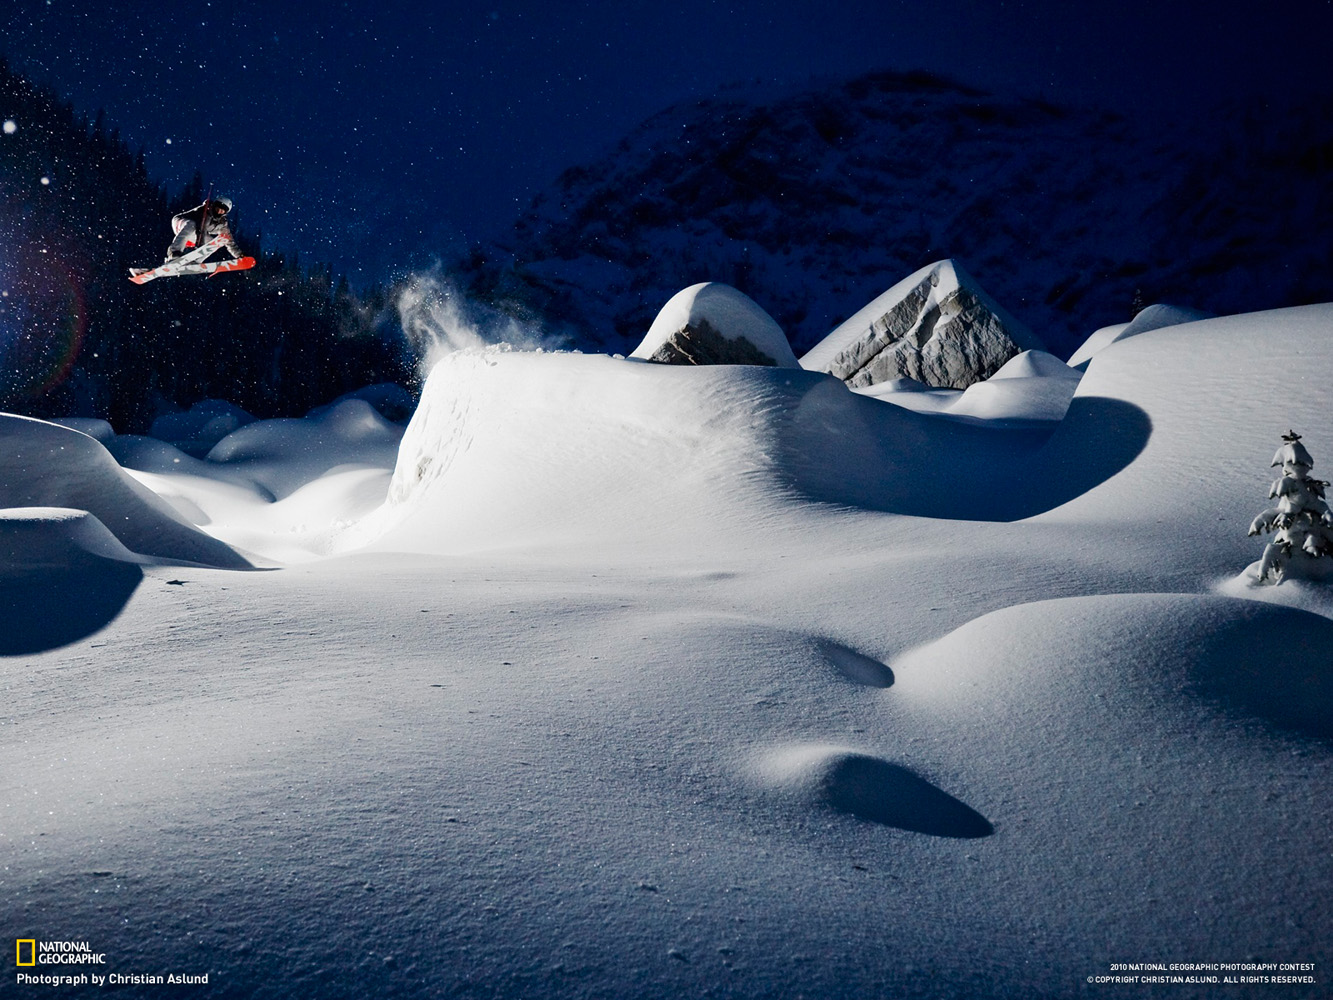 Location: Fernie, CanadaSkier: Adam Falk